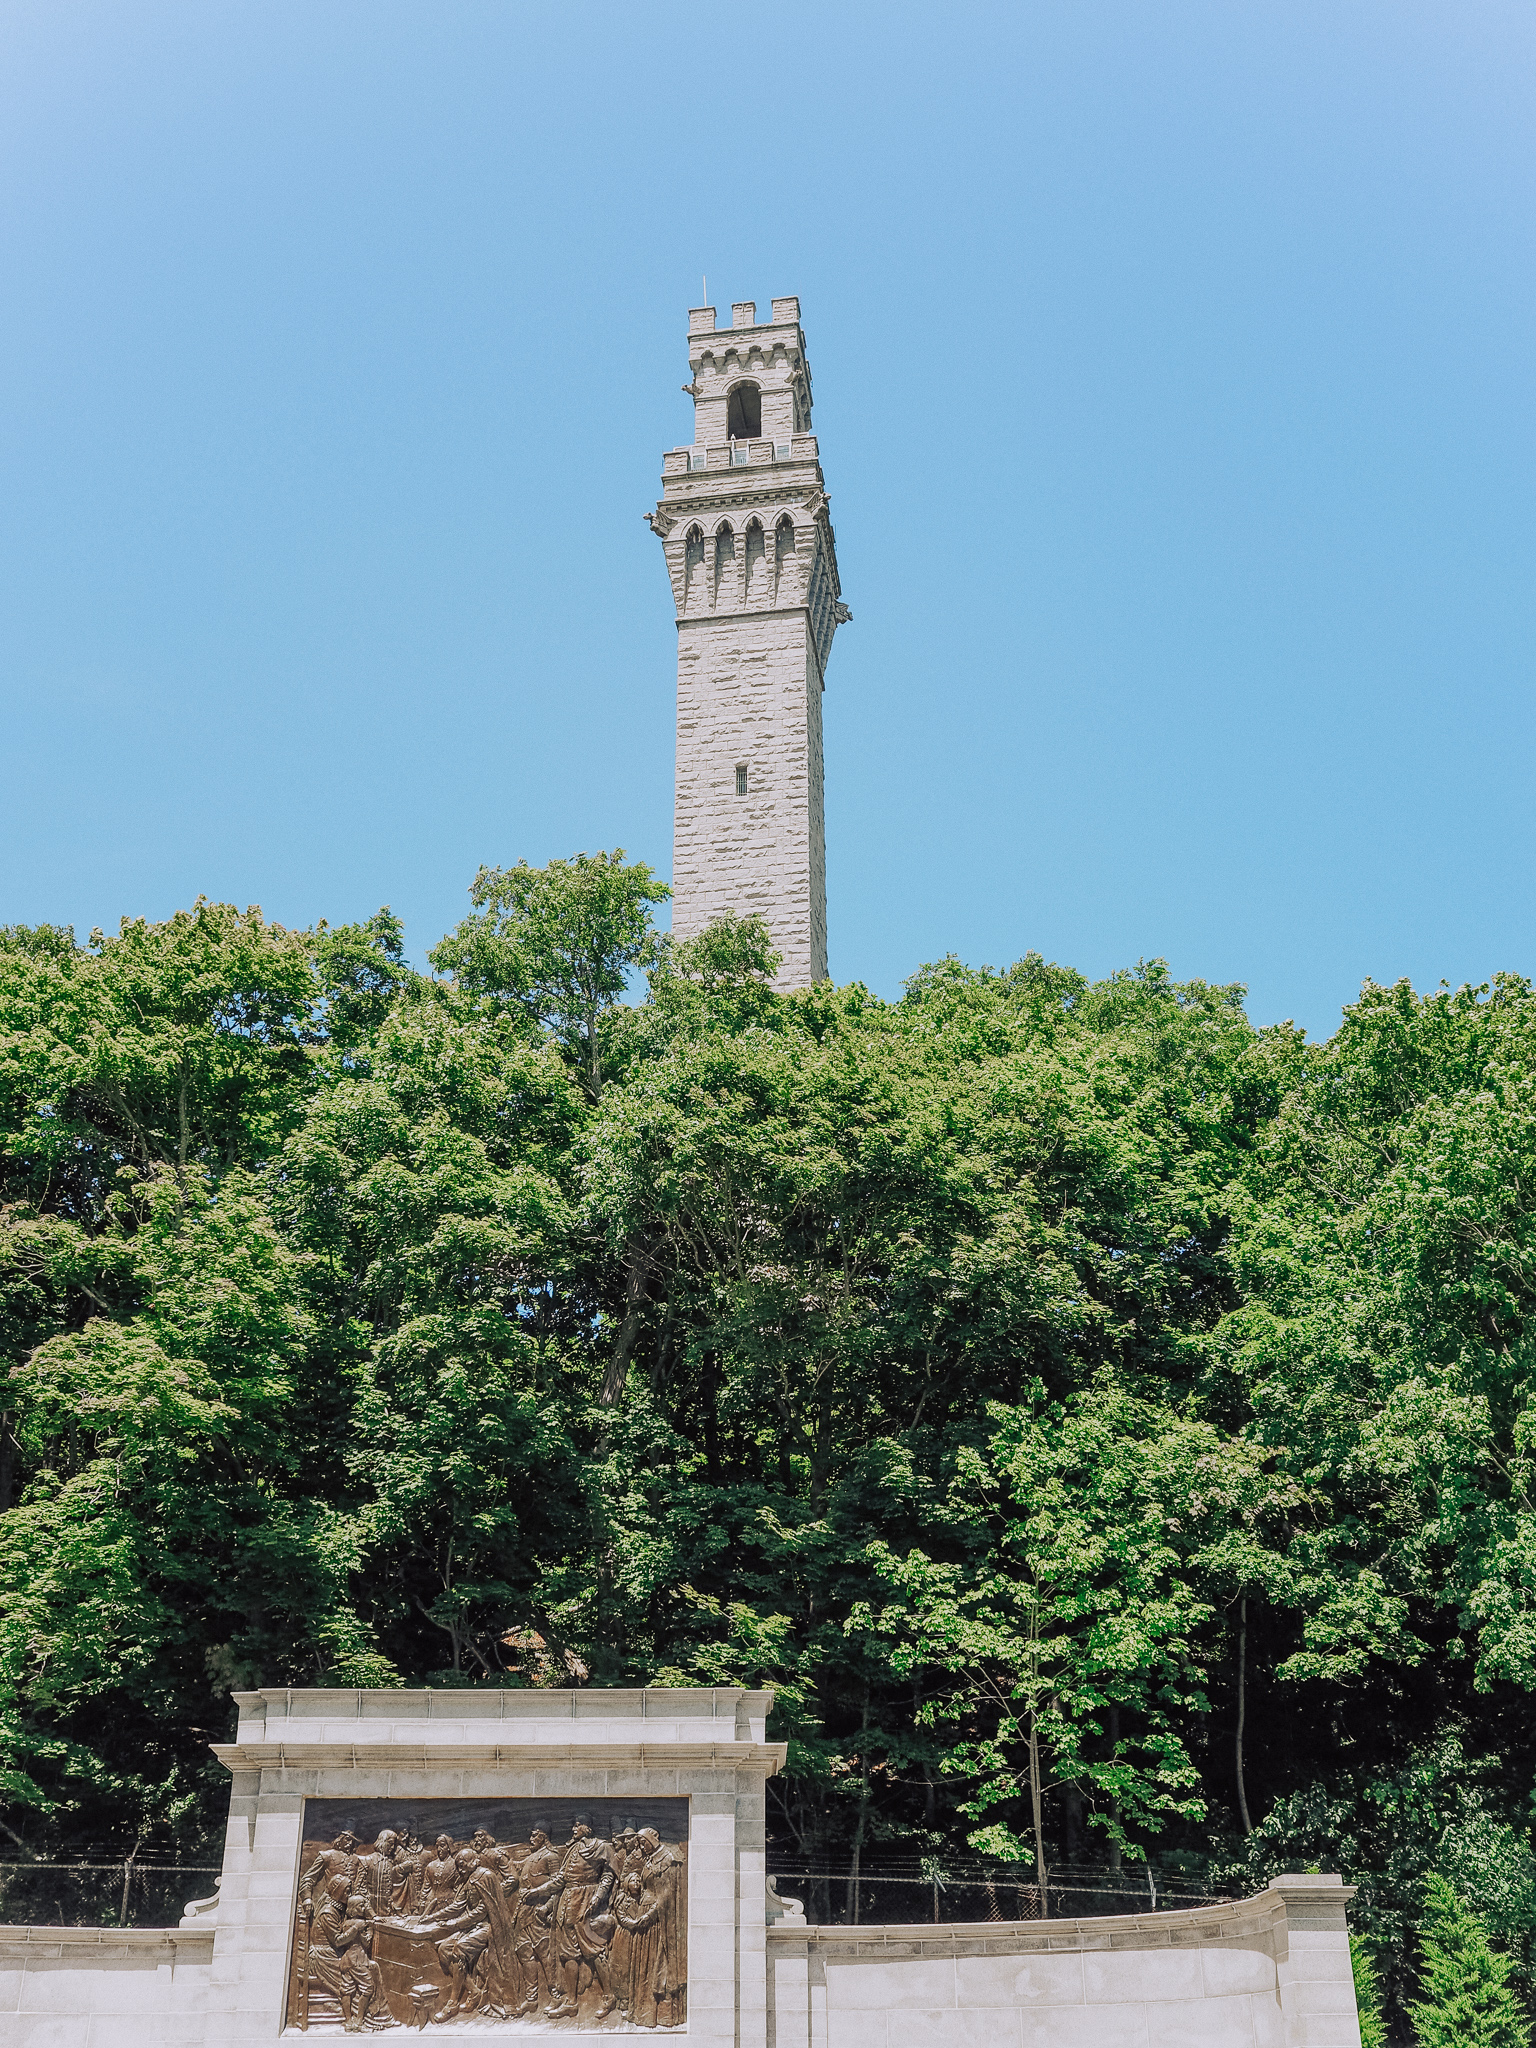 The Pilgrim Monument: Take a look through local history. The Pilgrim Monument founded in 1892 commemorated the Mayflower pilgrims first landing in Provincetown before sailing to Plymouth.